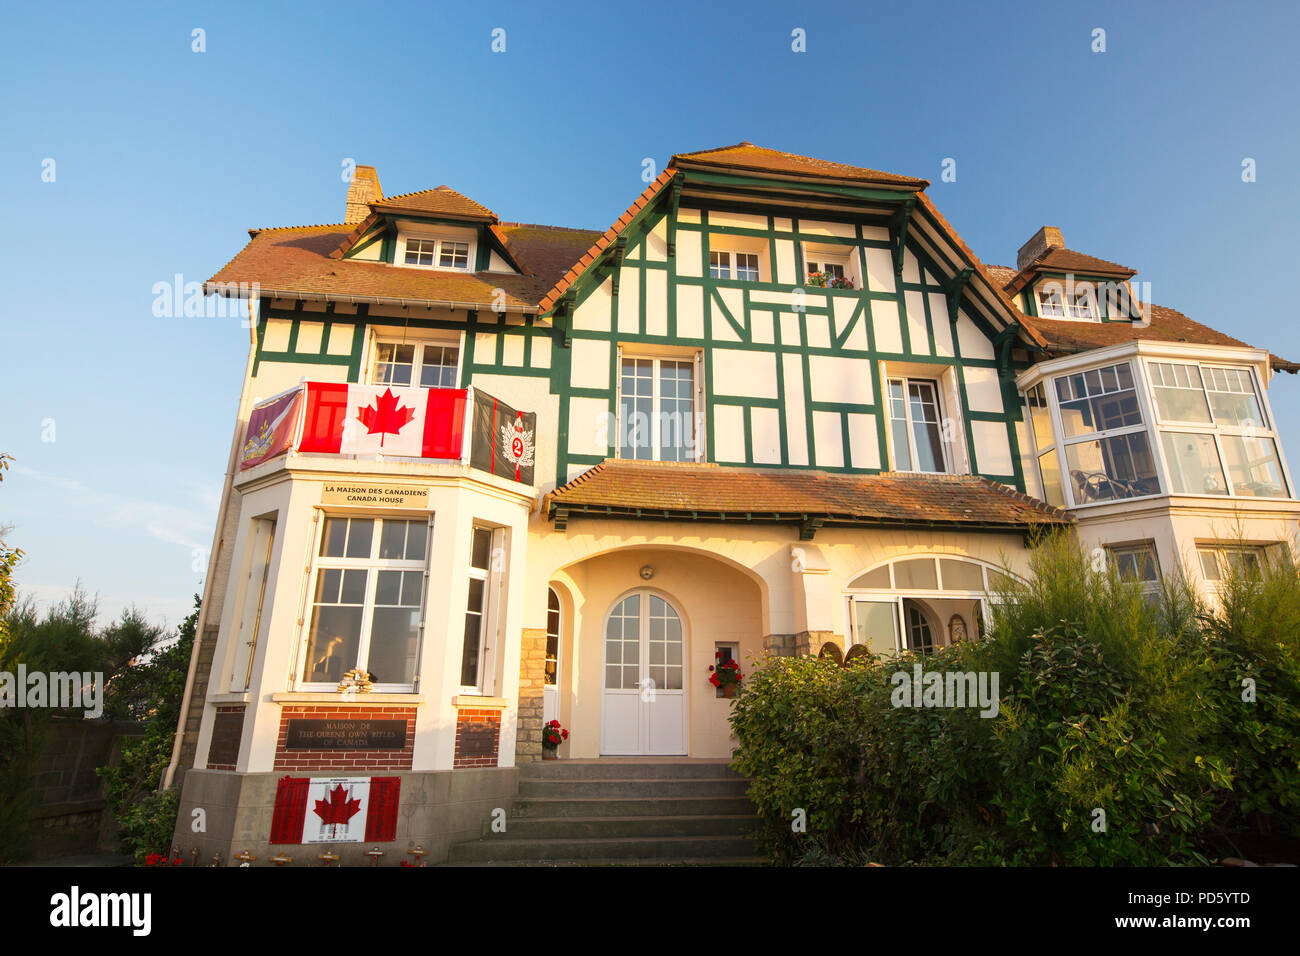 Canada House Probably The First House To Be Liberated From D Day On Juno Beach Bernieres Sur Mer Normandy France Stock Photo Alamy